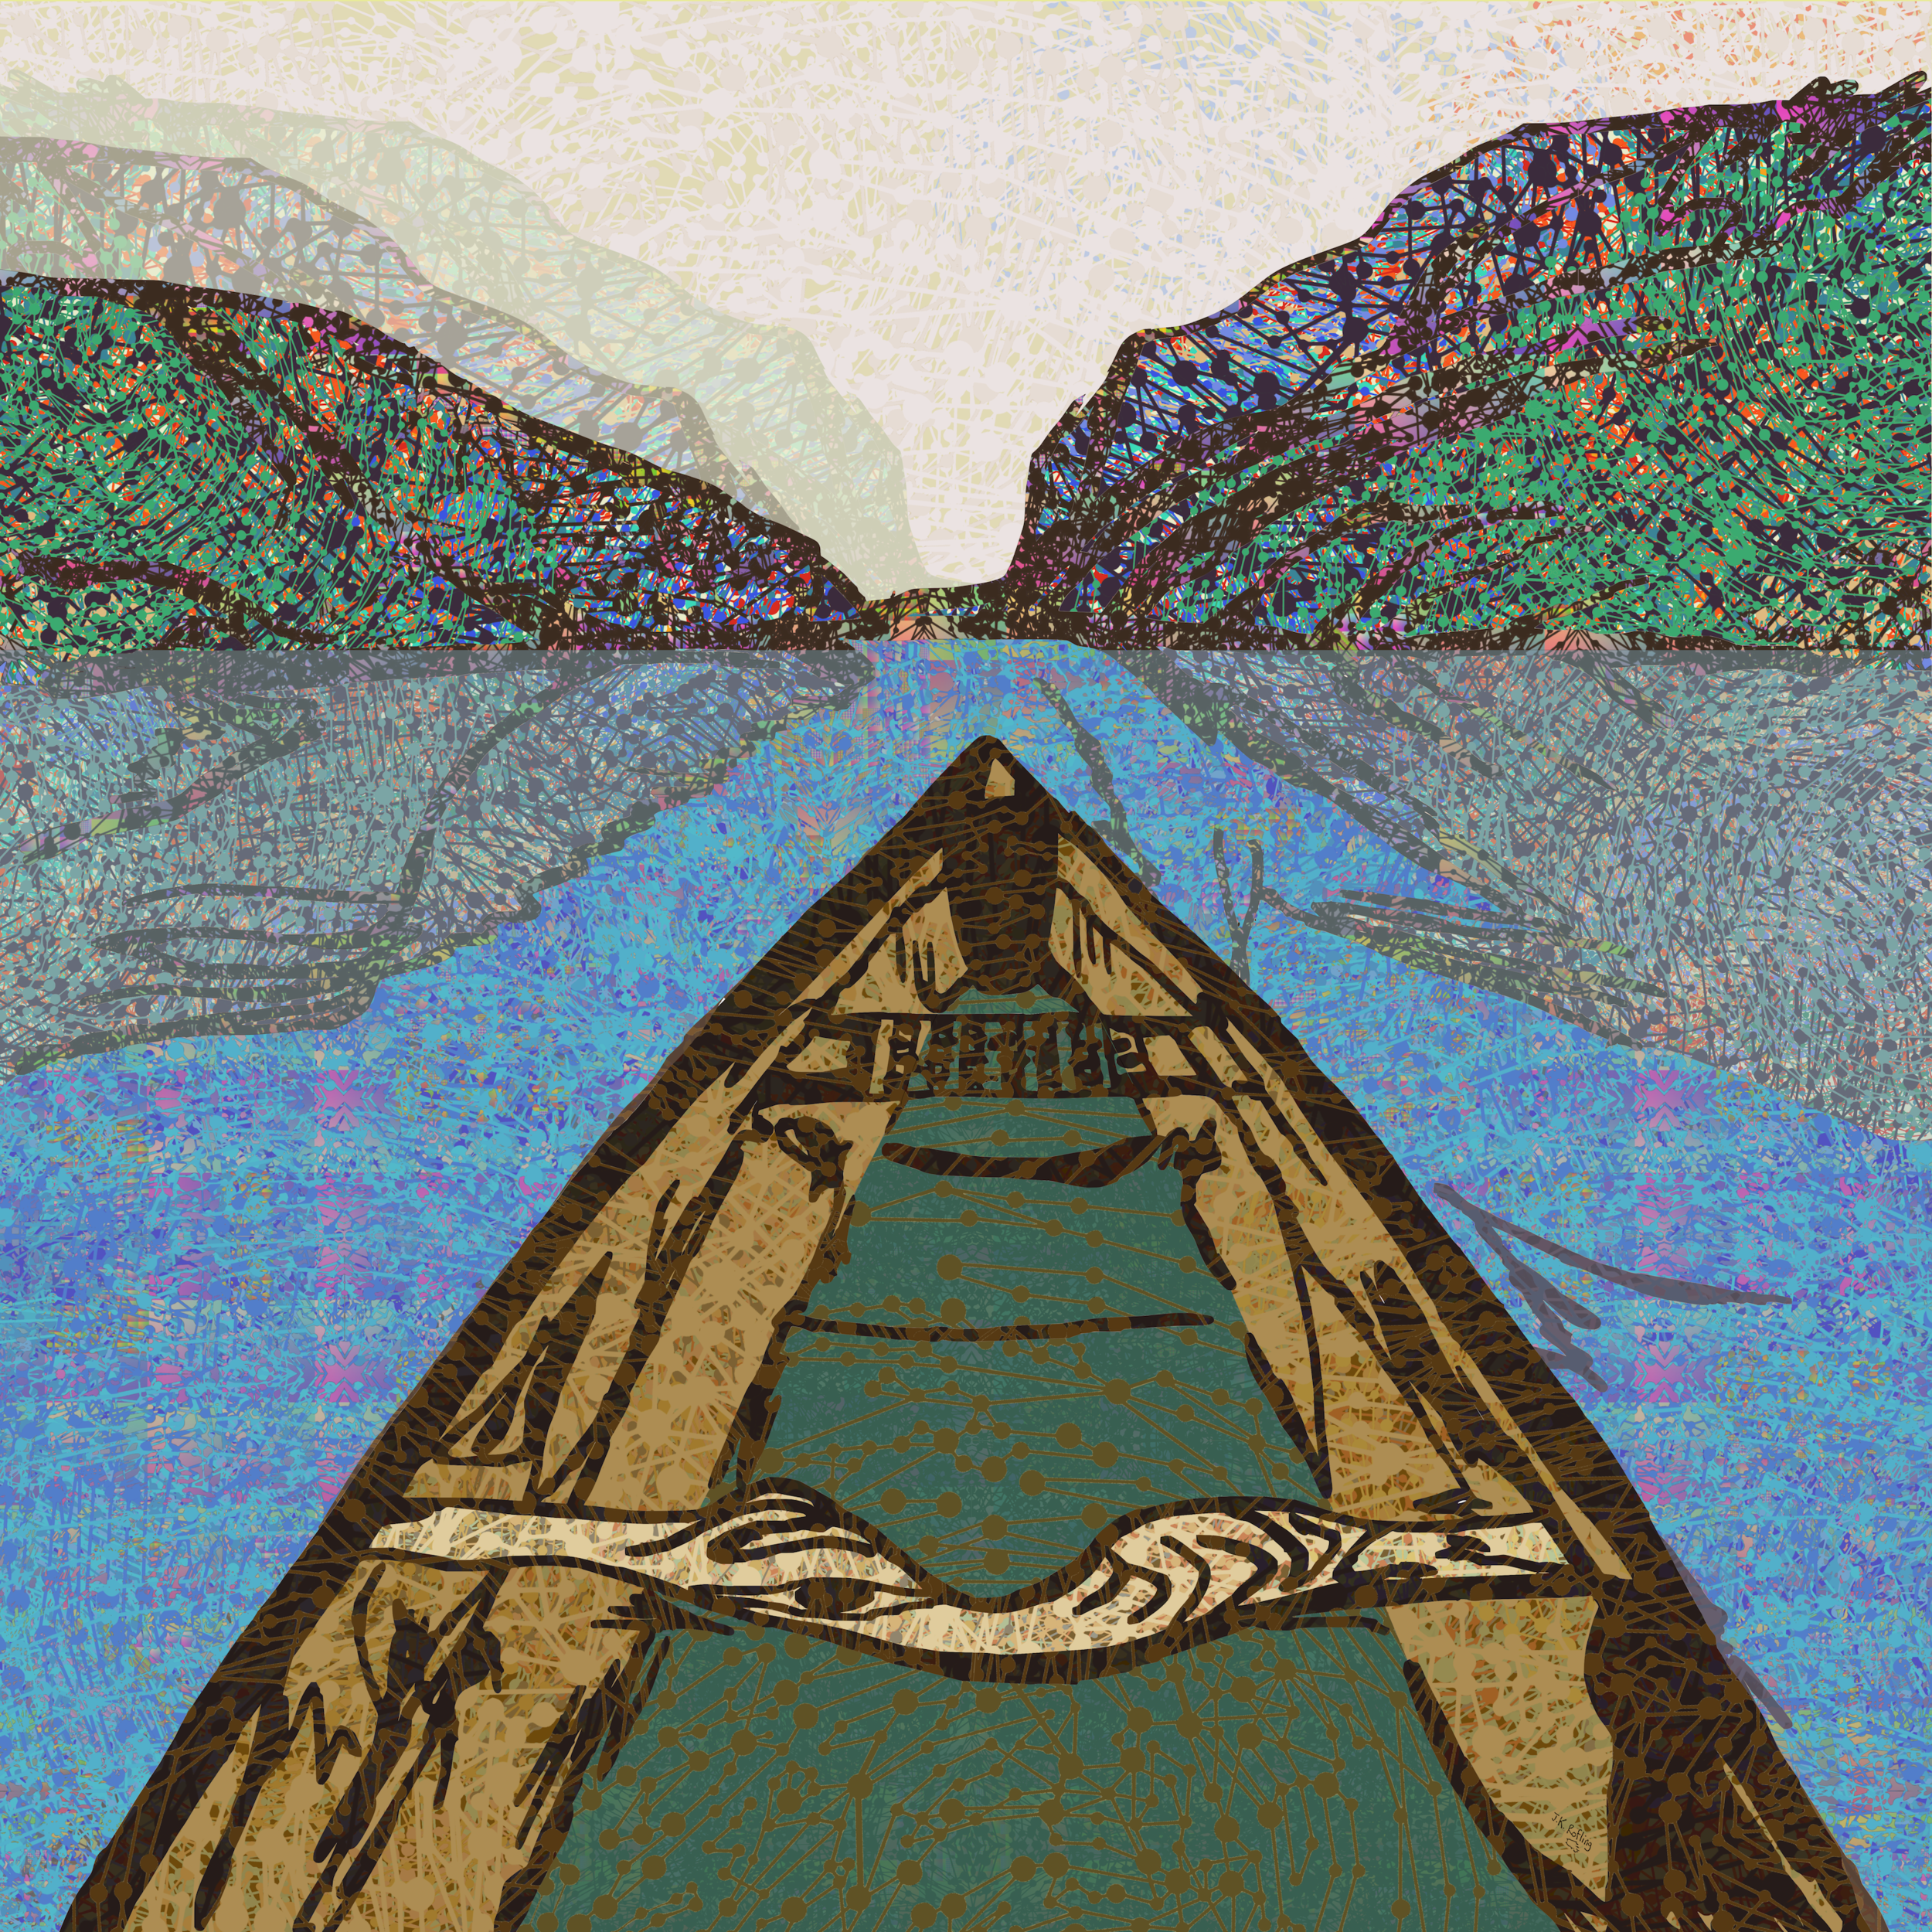 the Canoe_sq.png